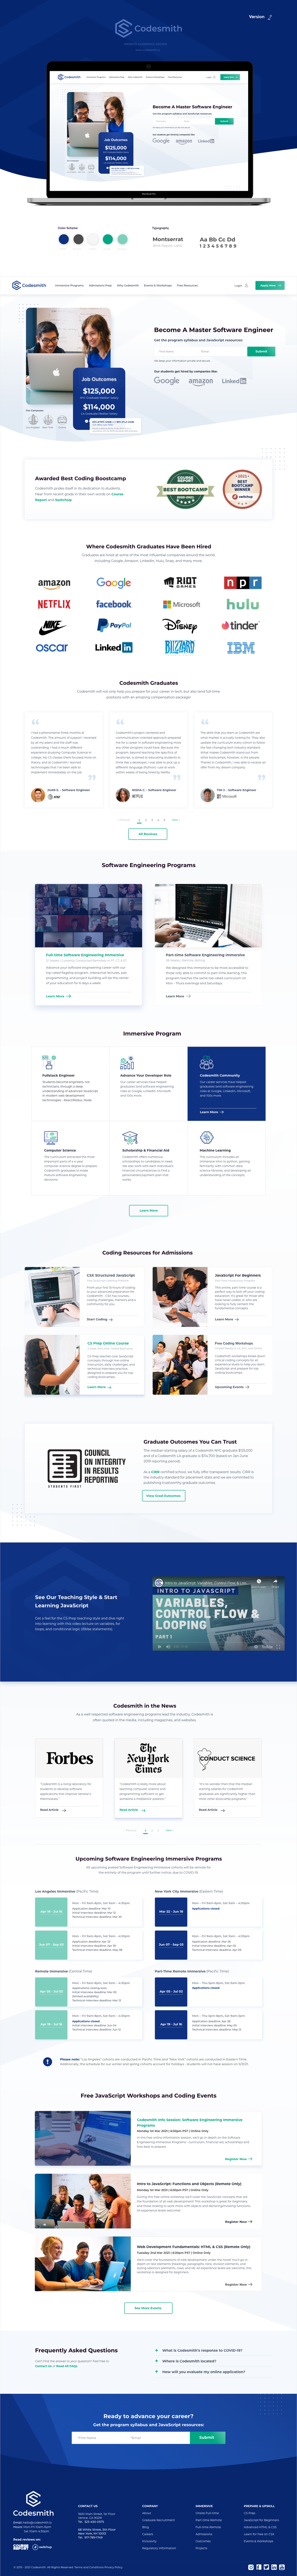 """""""New website homepage design to attract software engineering students"""""""